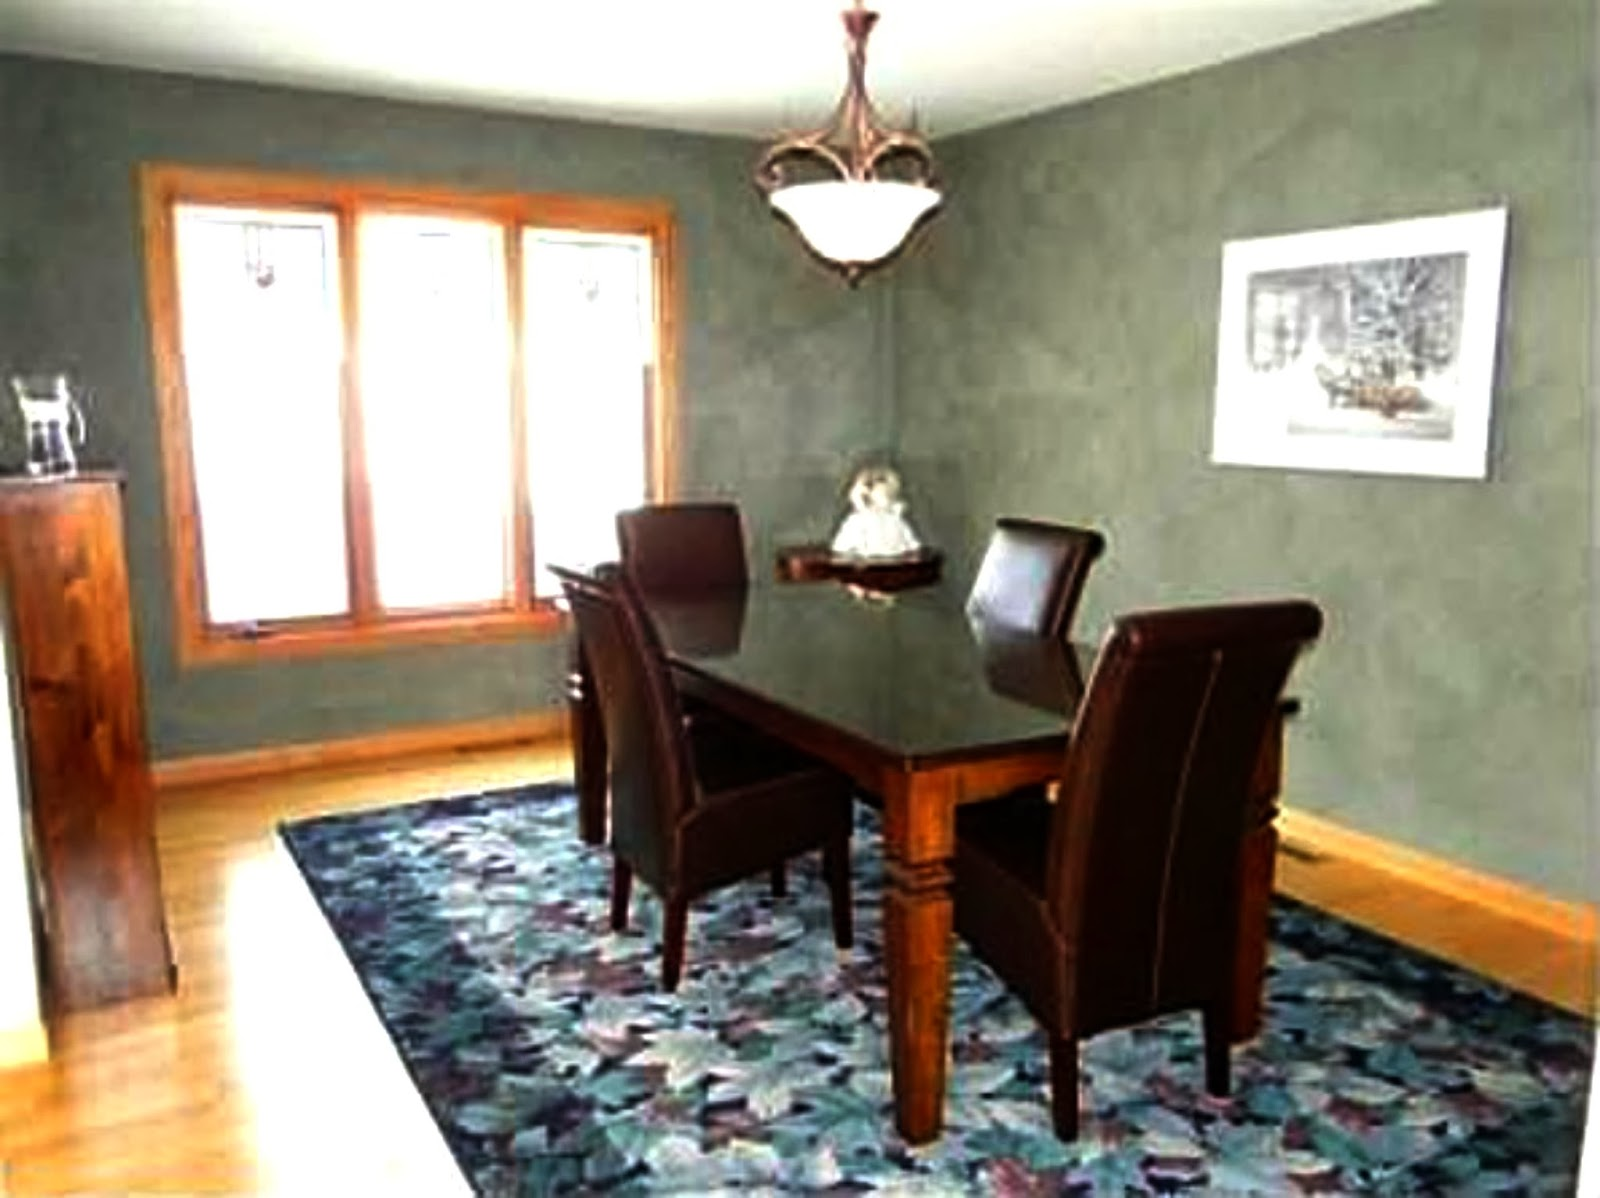 Formal dining room into